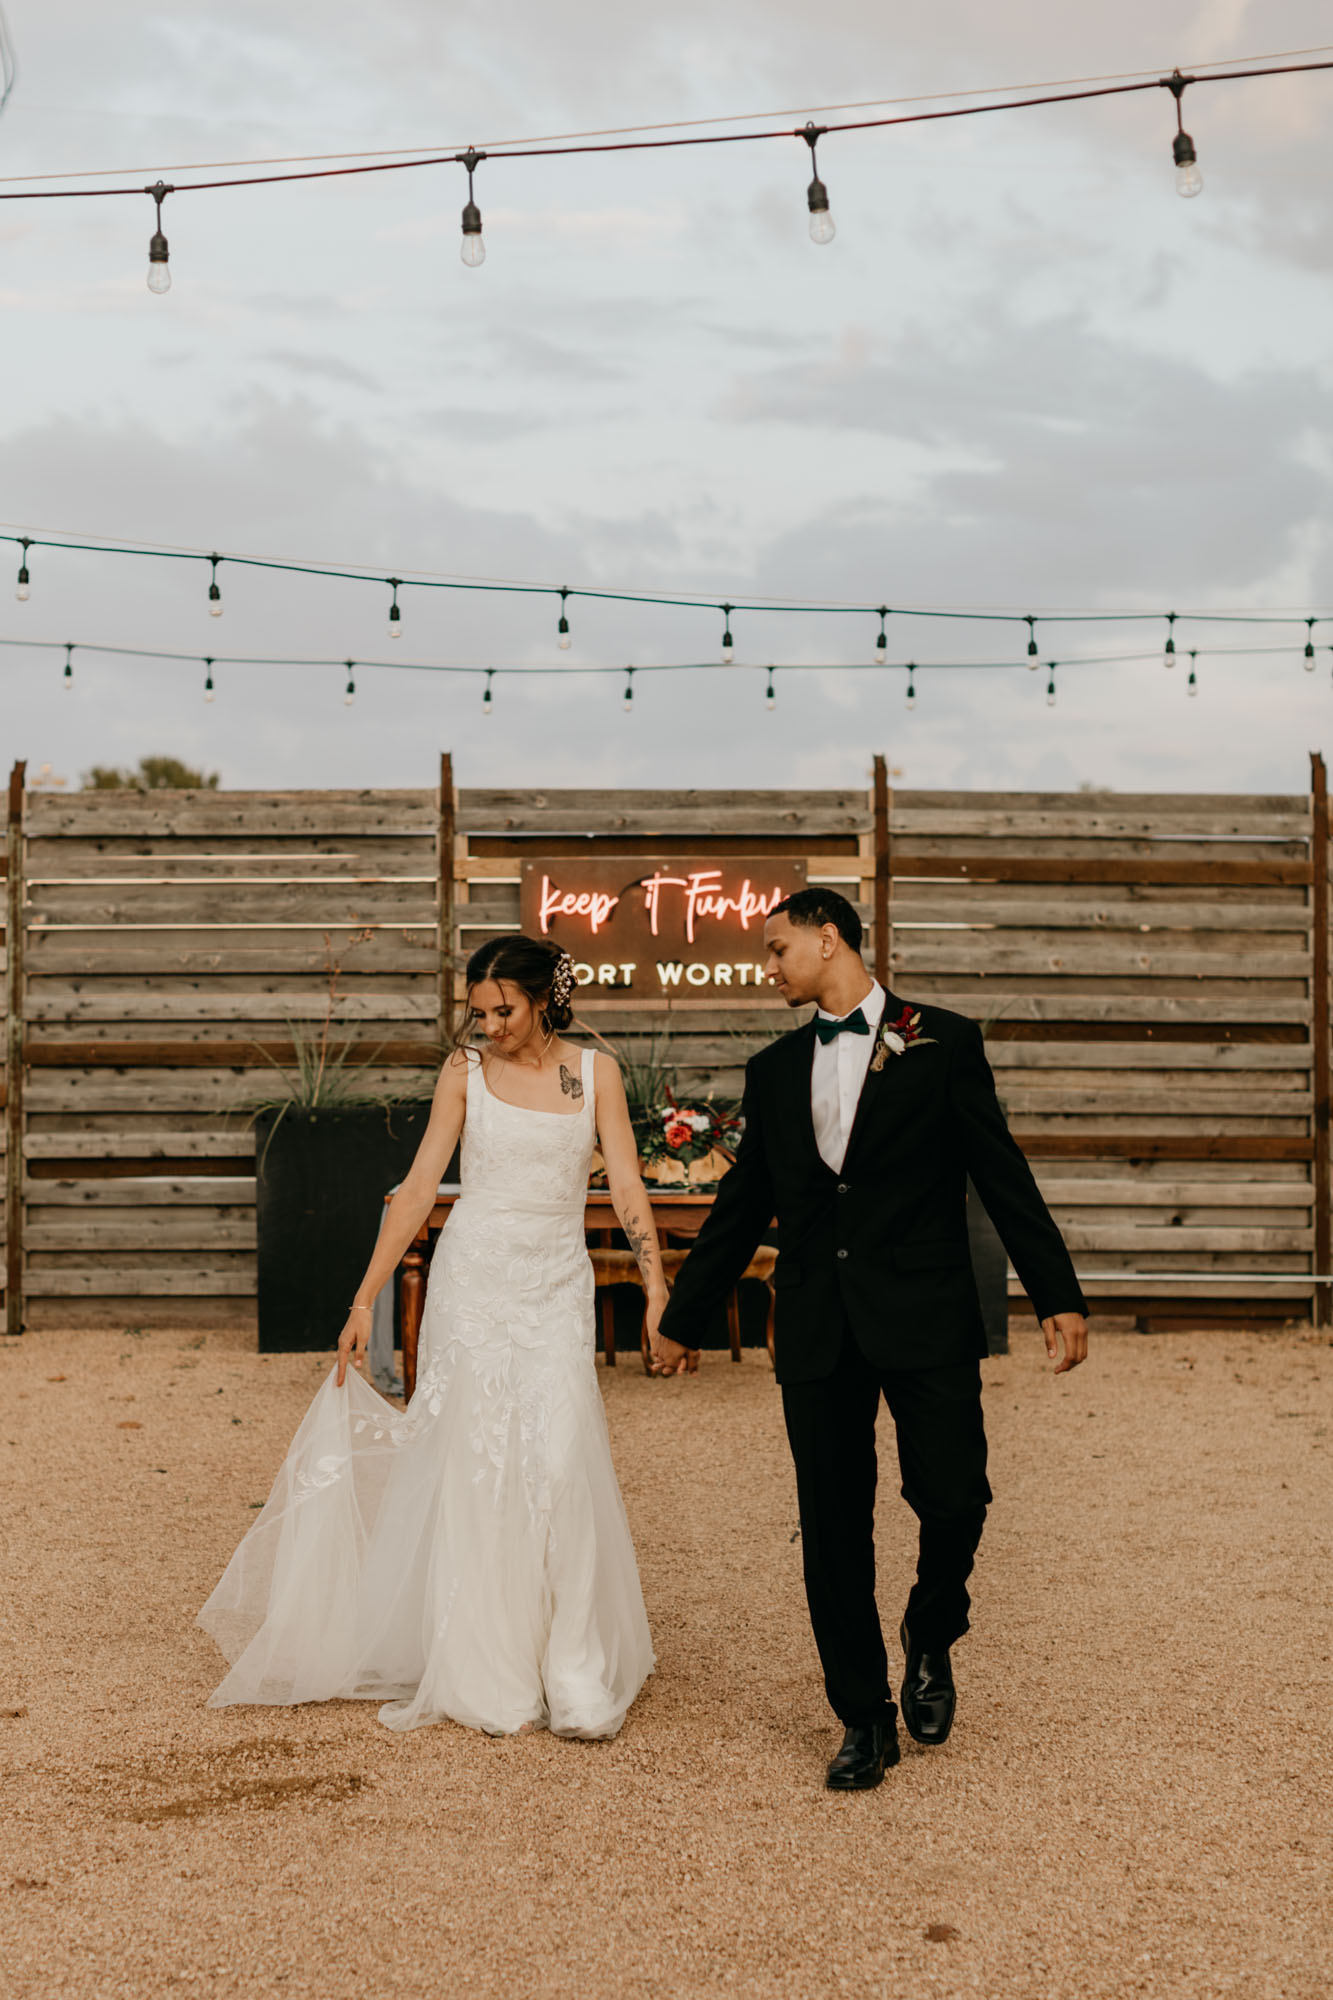 bride and groom walking in front of red neon wedding sign